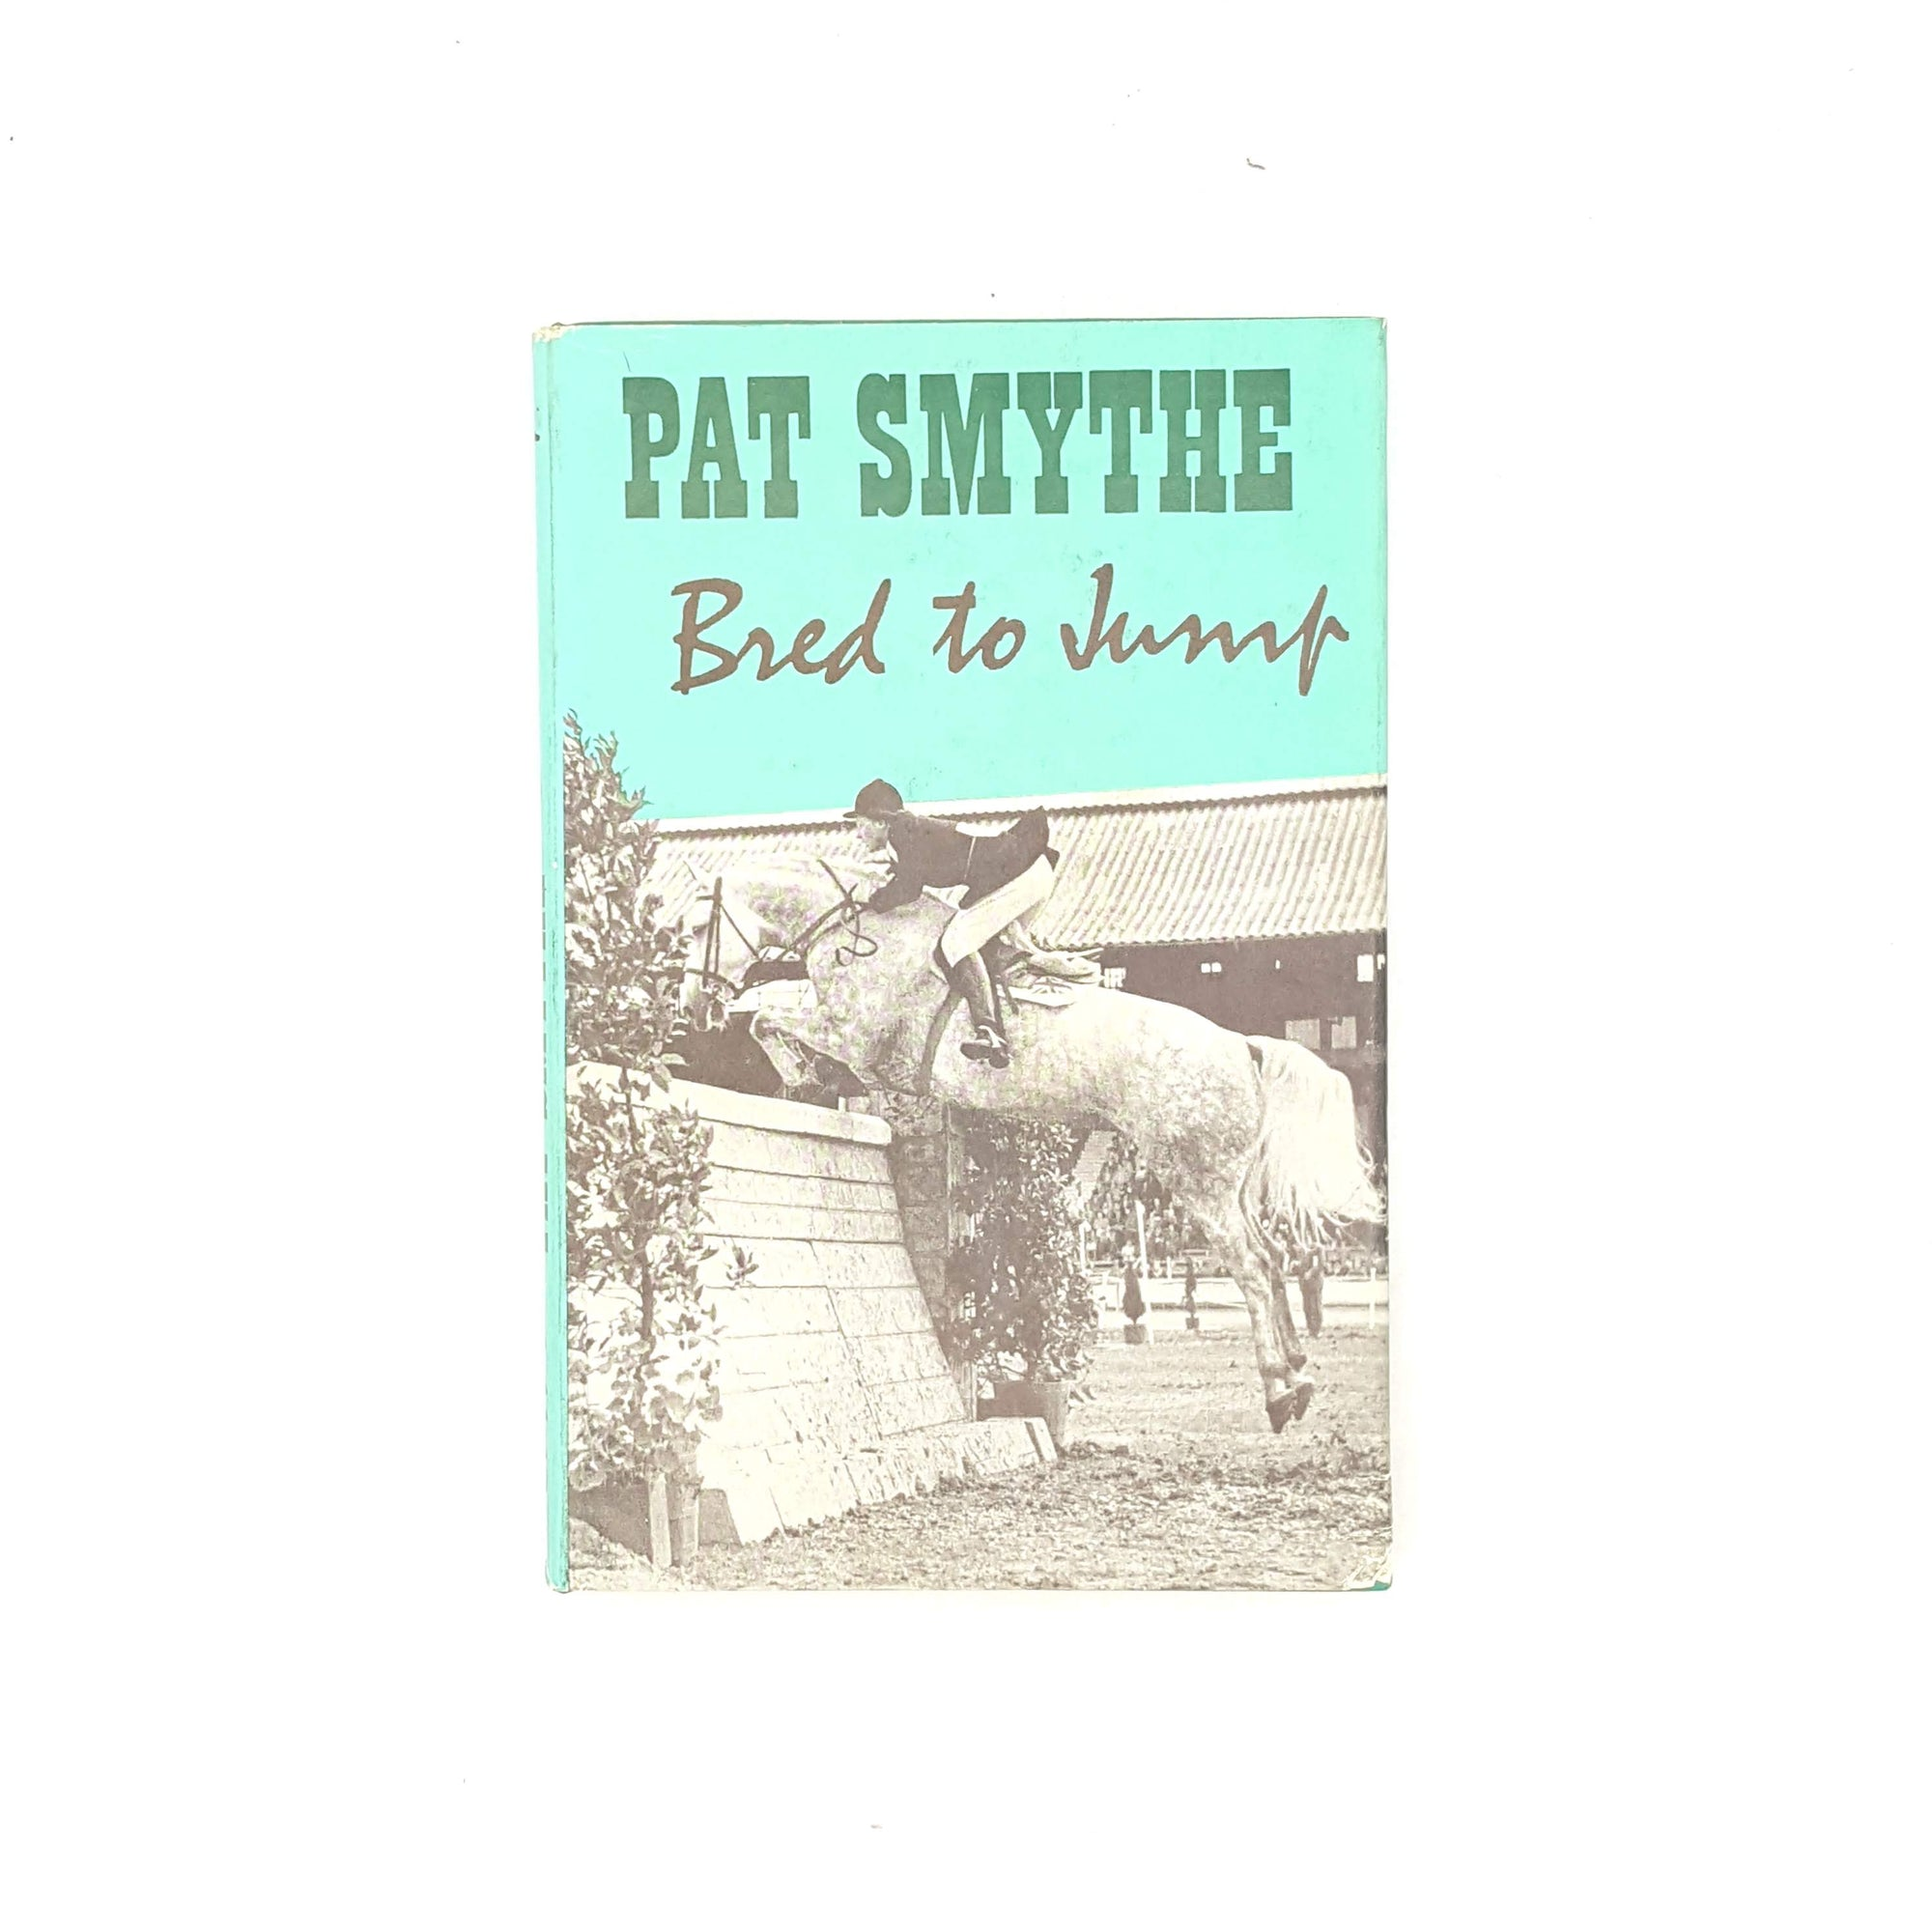 Bred to Jump by Pat Smythe 1965